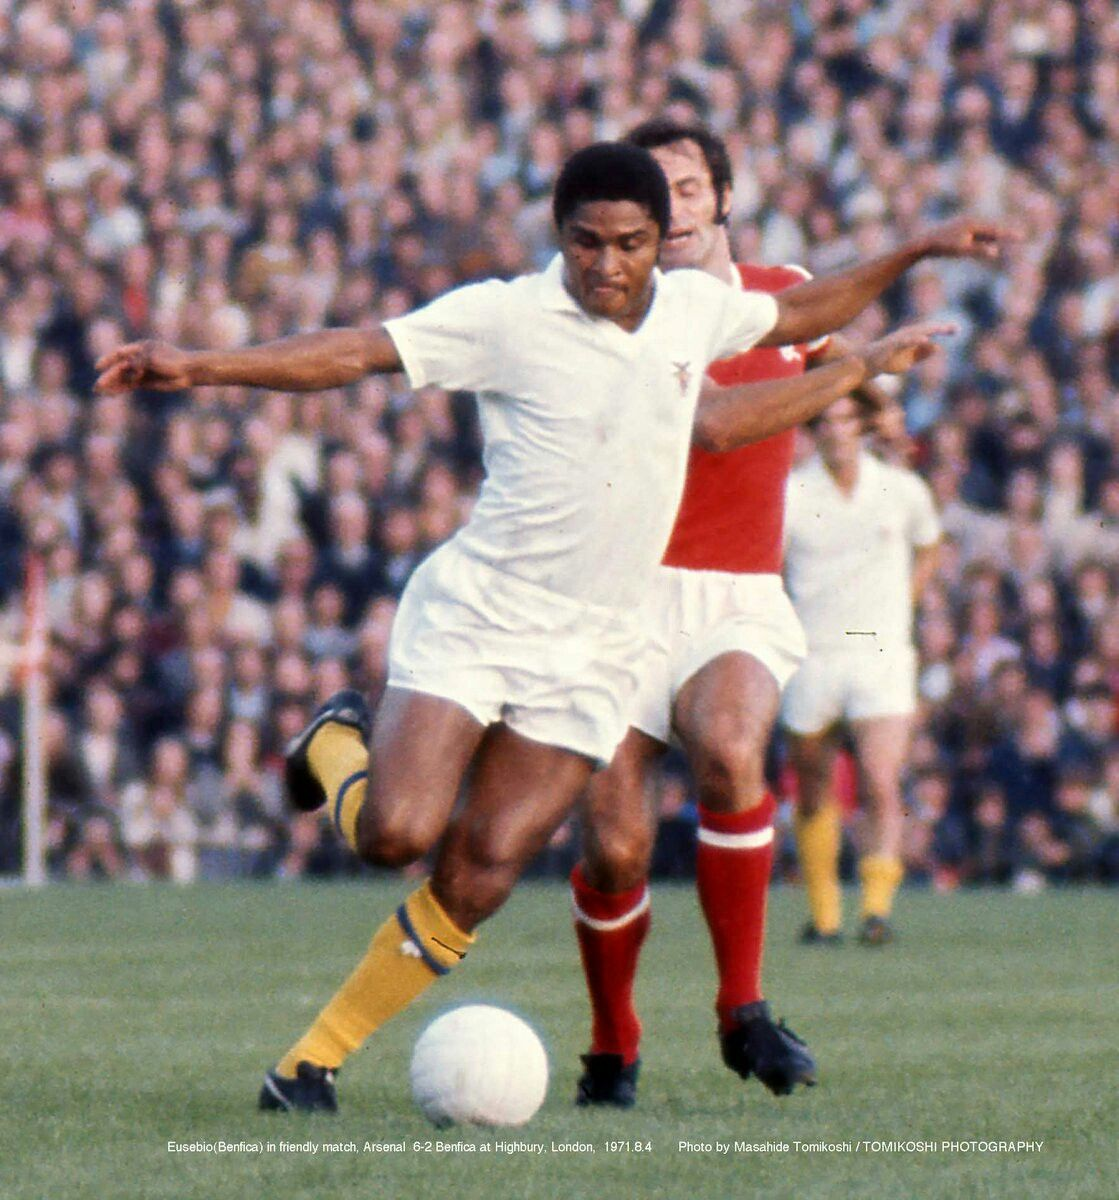 Pin by Dulat on portugal   English football league, Eusebio, Best football  players